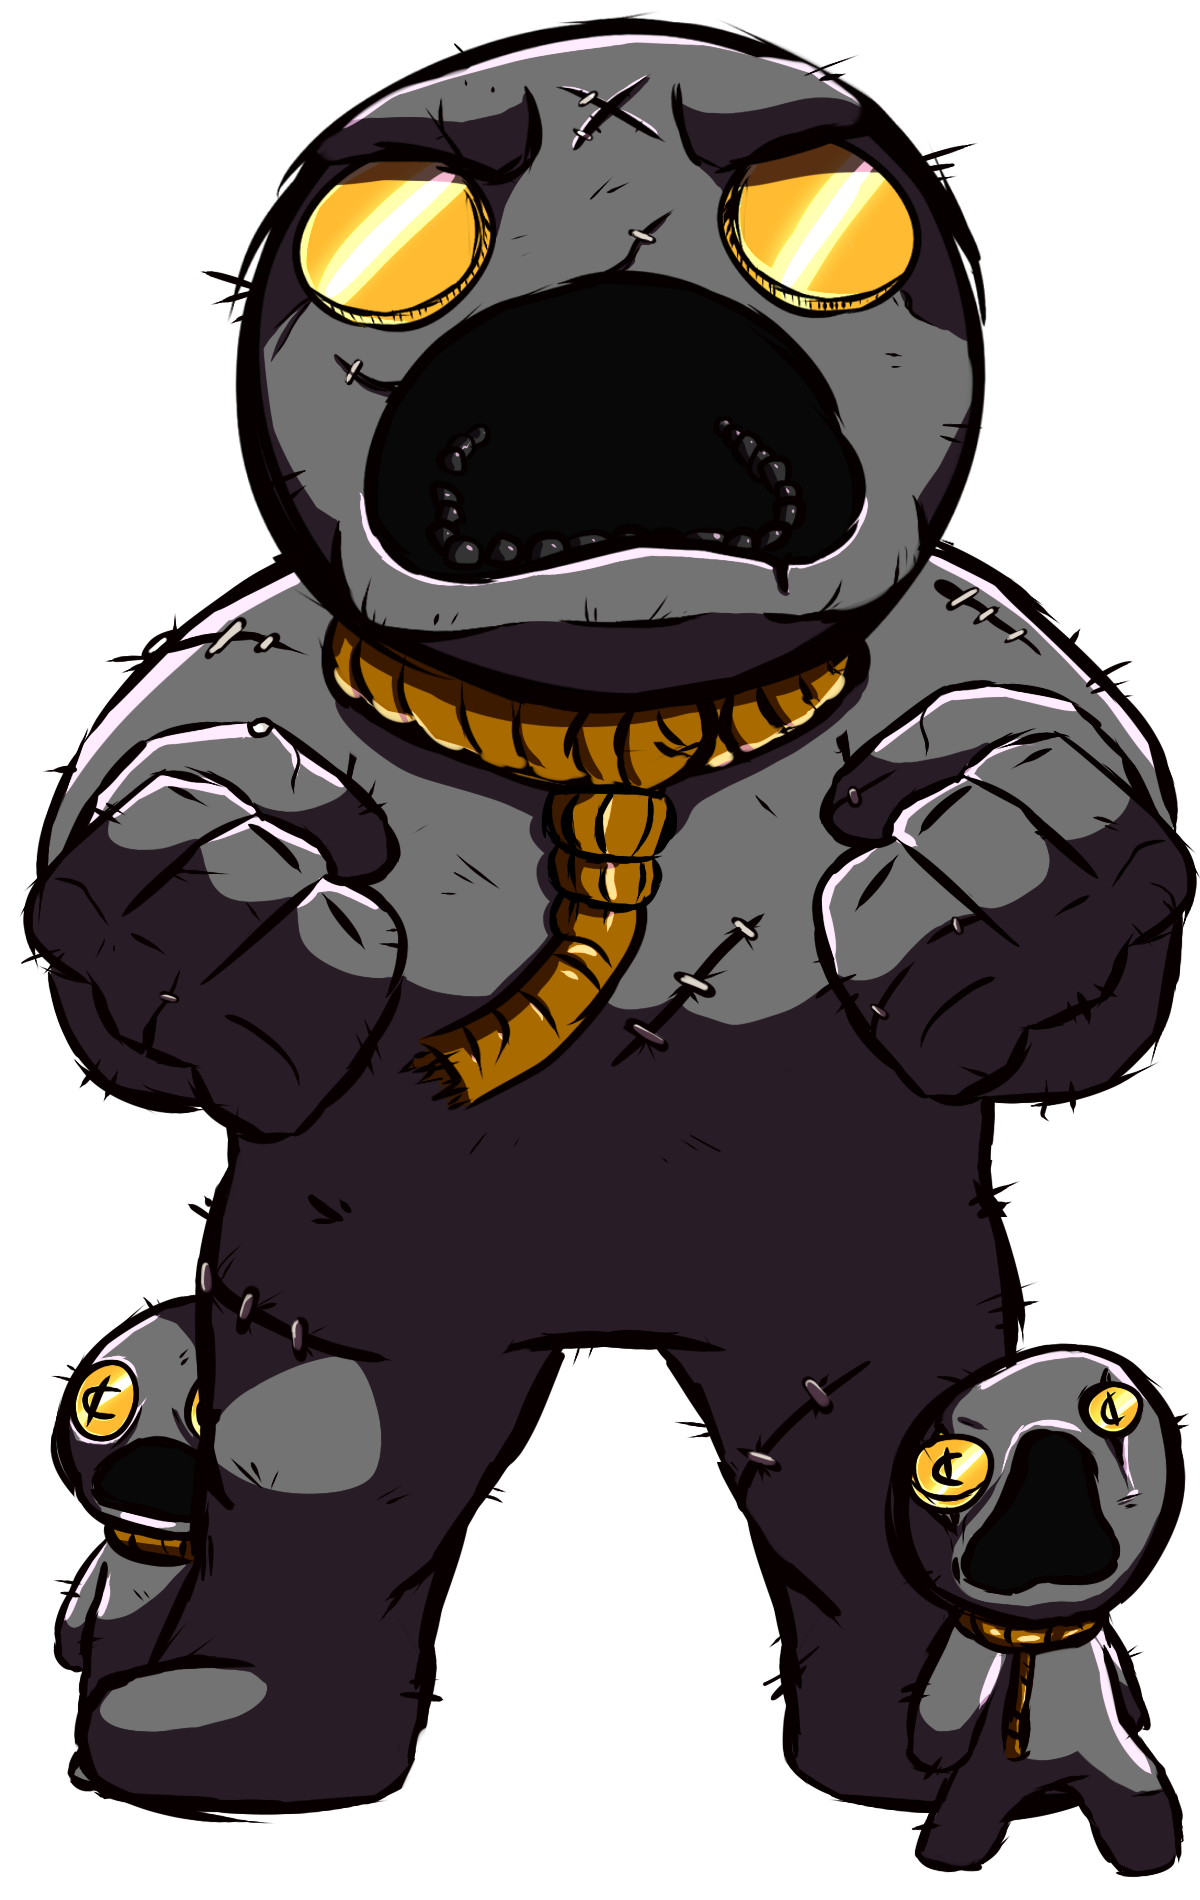 Now I Dont Have Afterbirth But I Heard Greed Isnt The Easiest Boss So Judging From That I Dont Want To The Binding Of Isaac Cartoon Cool Cartoons